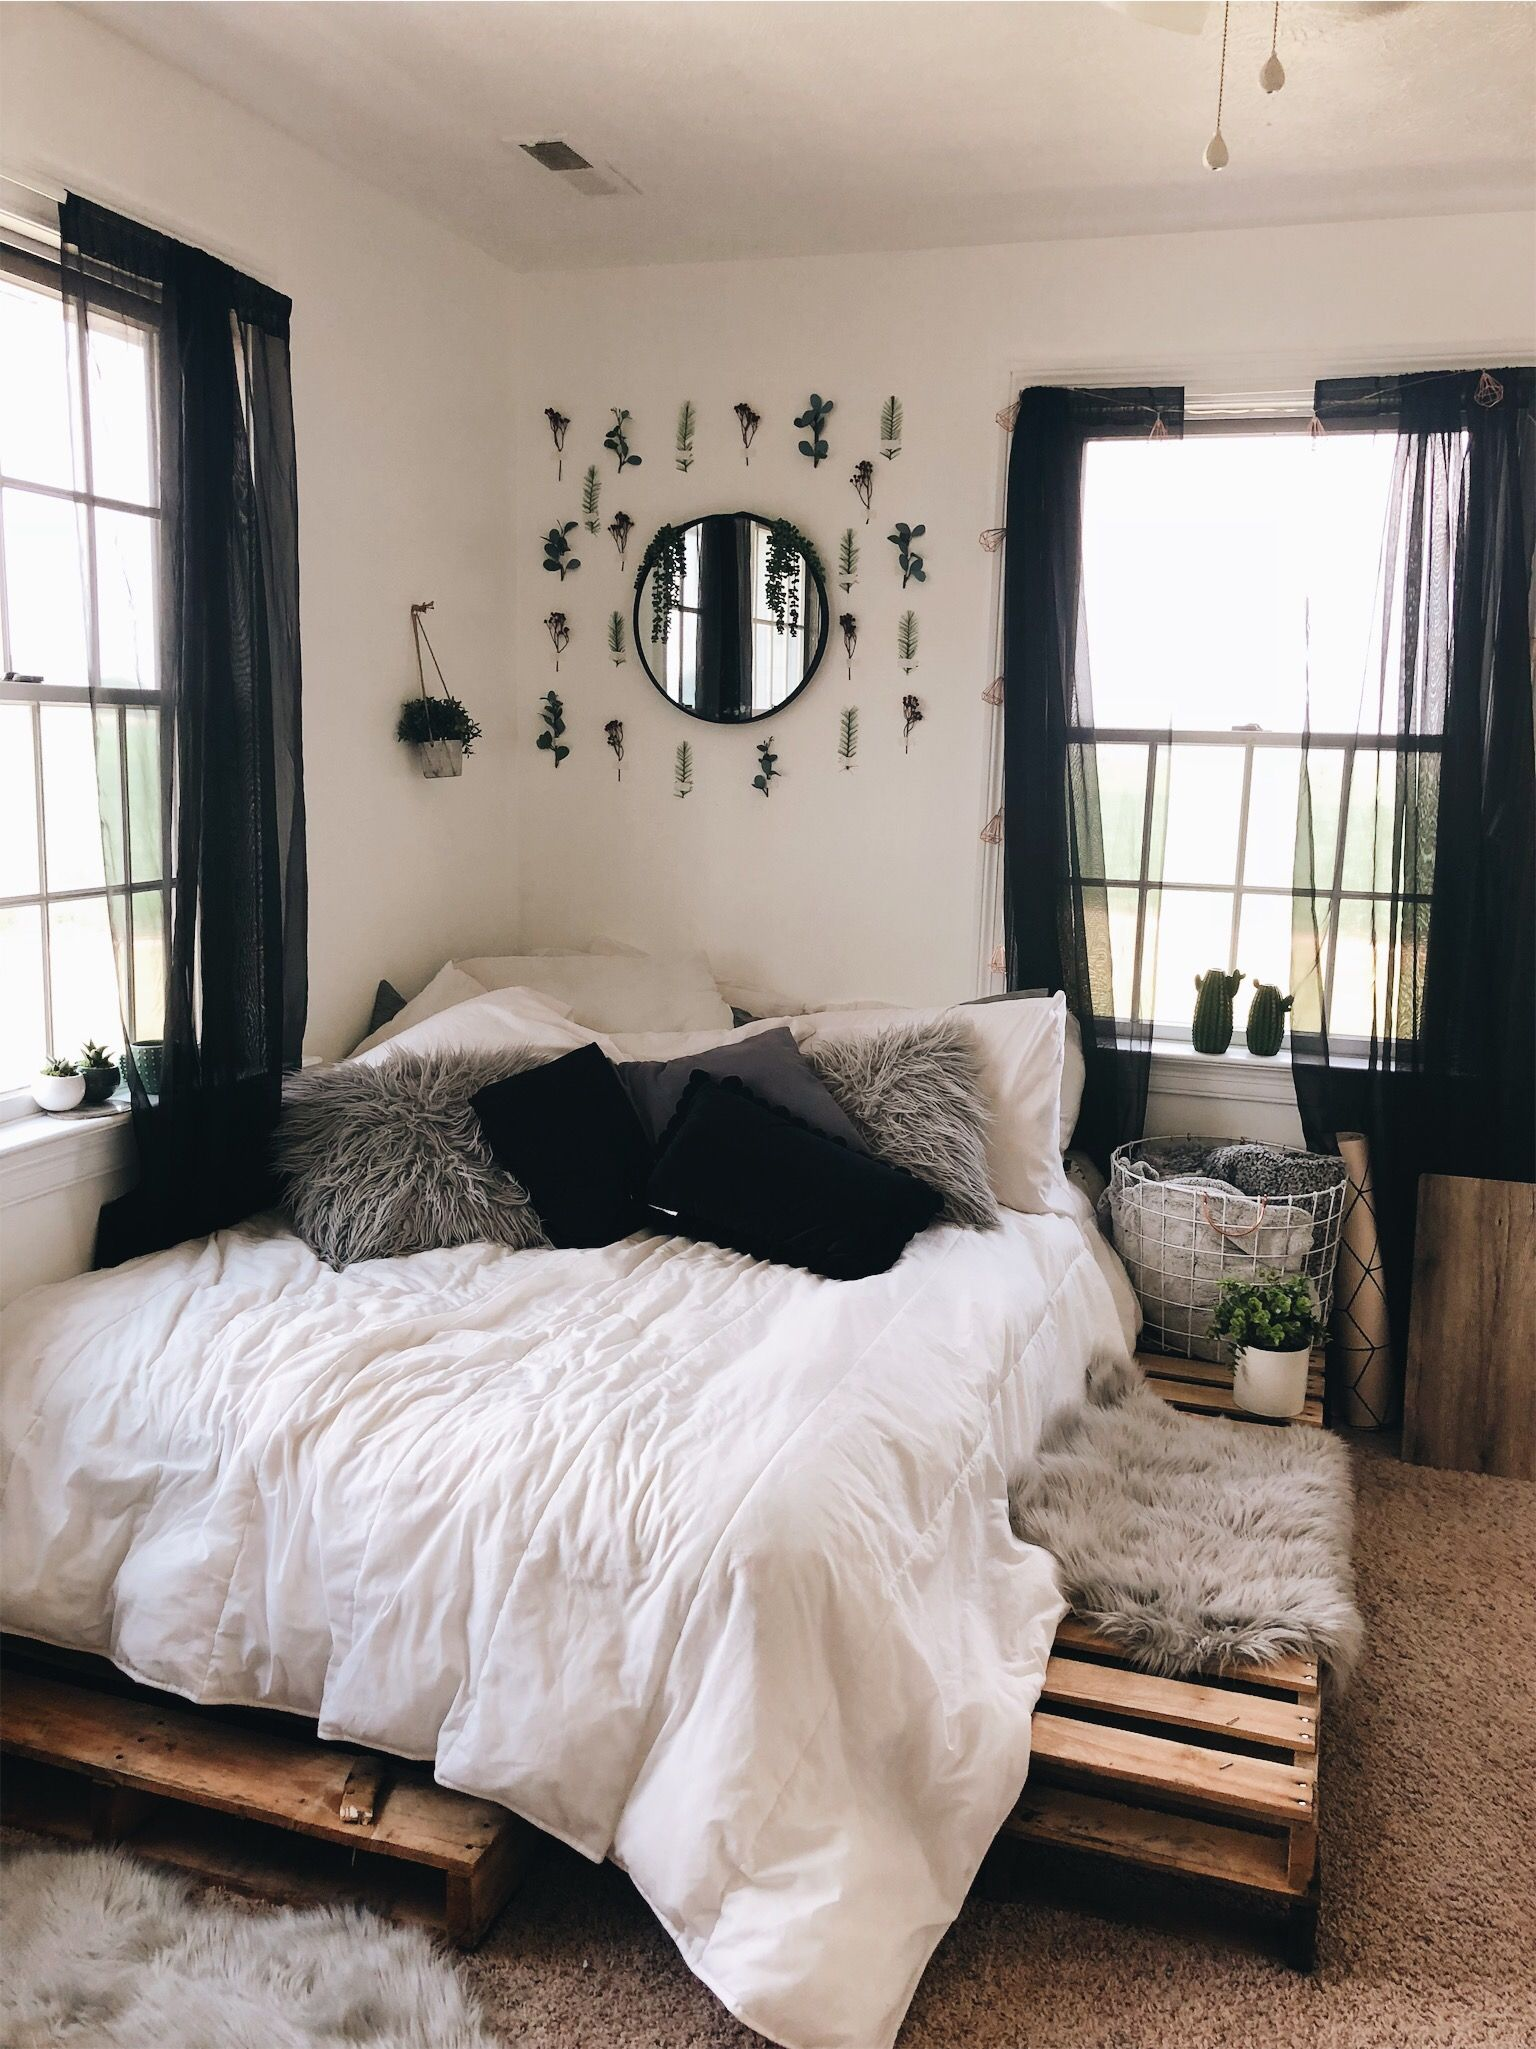 ROOM INSPO ! cozy #roomideas #roomdesign | Small room ... on Cheap Bedroom Ideas For Small Rooms  id=77286